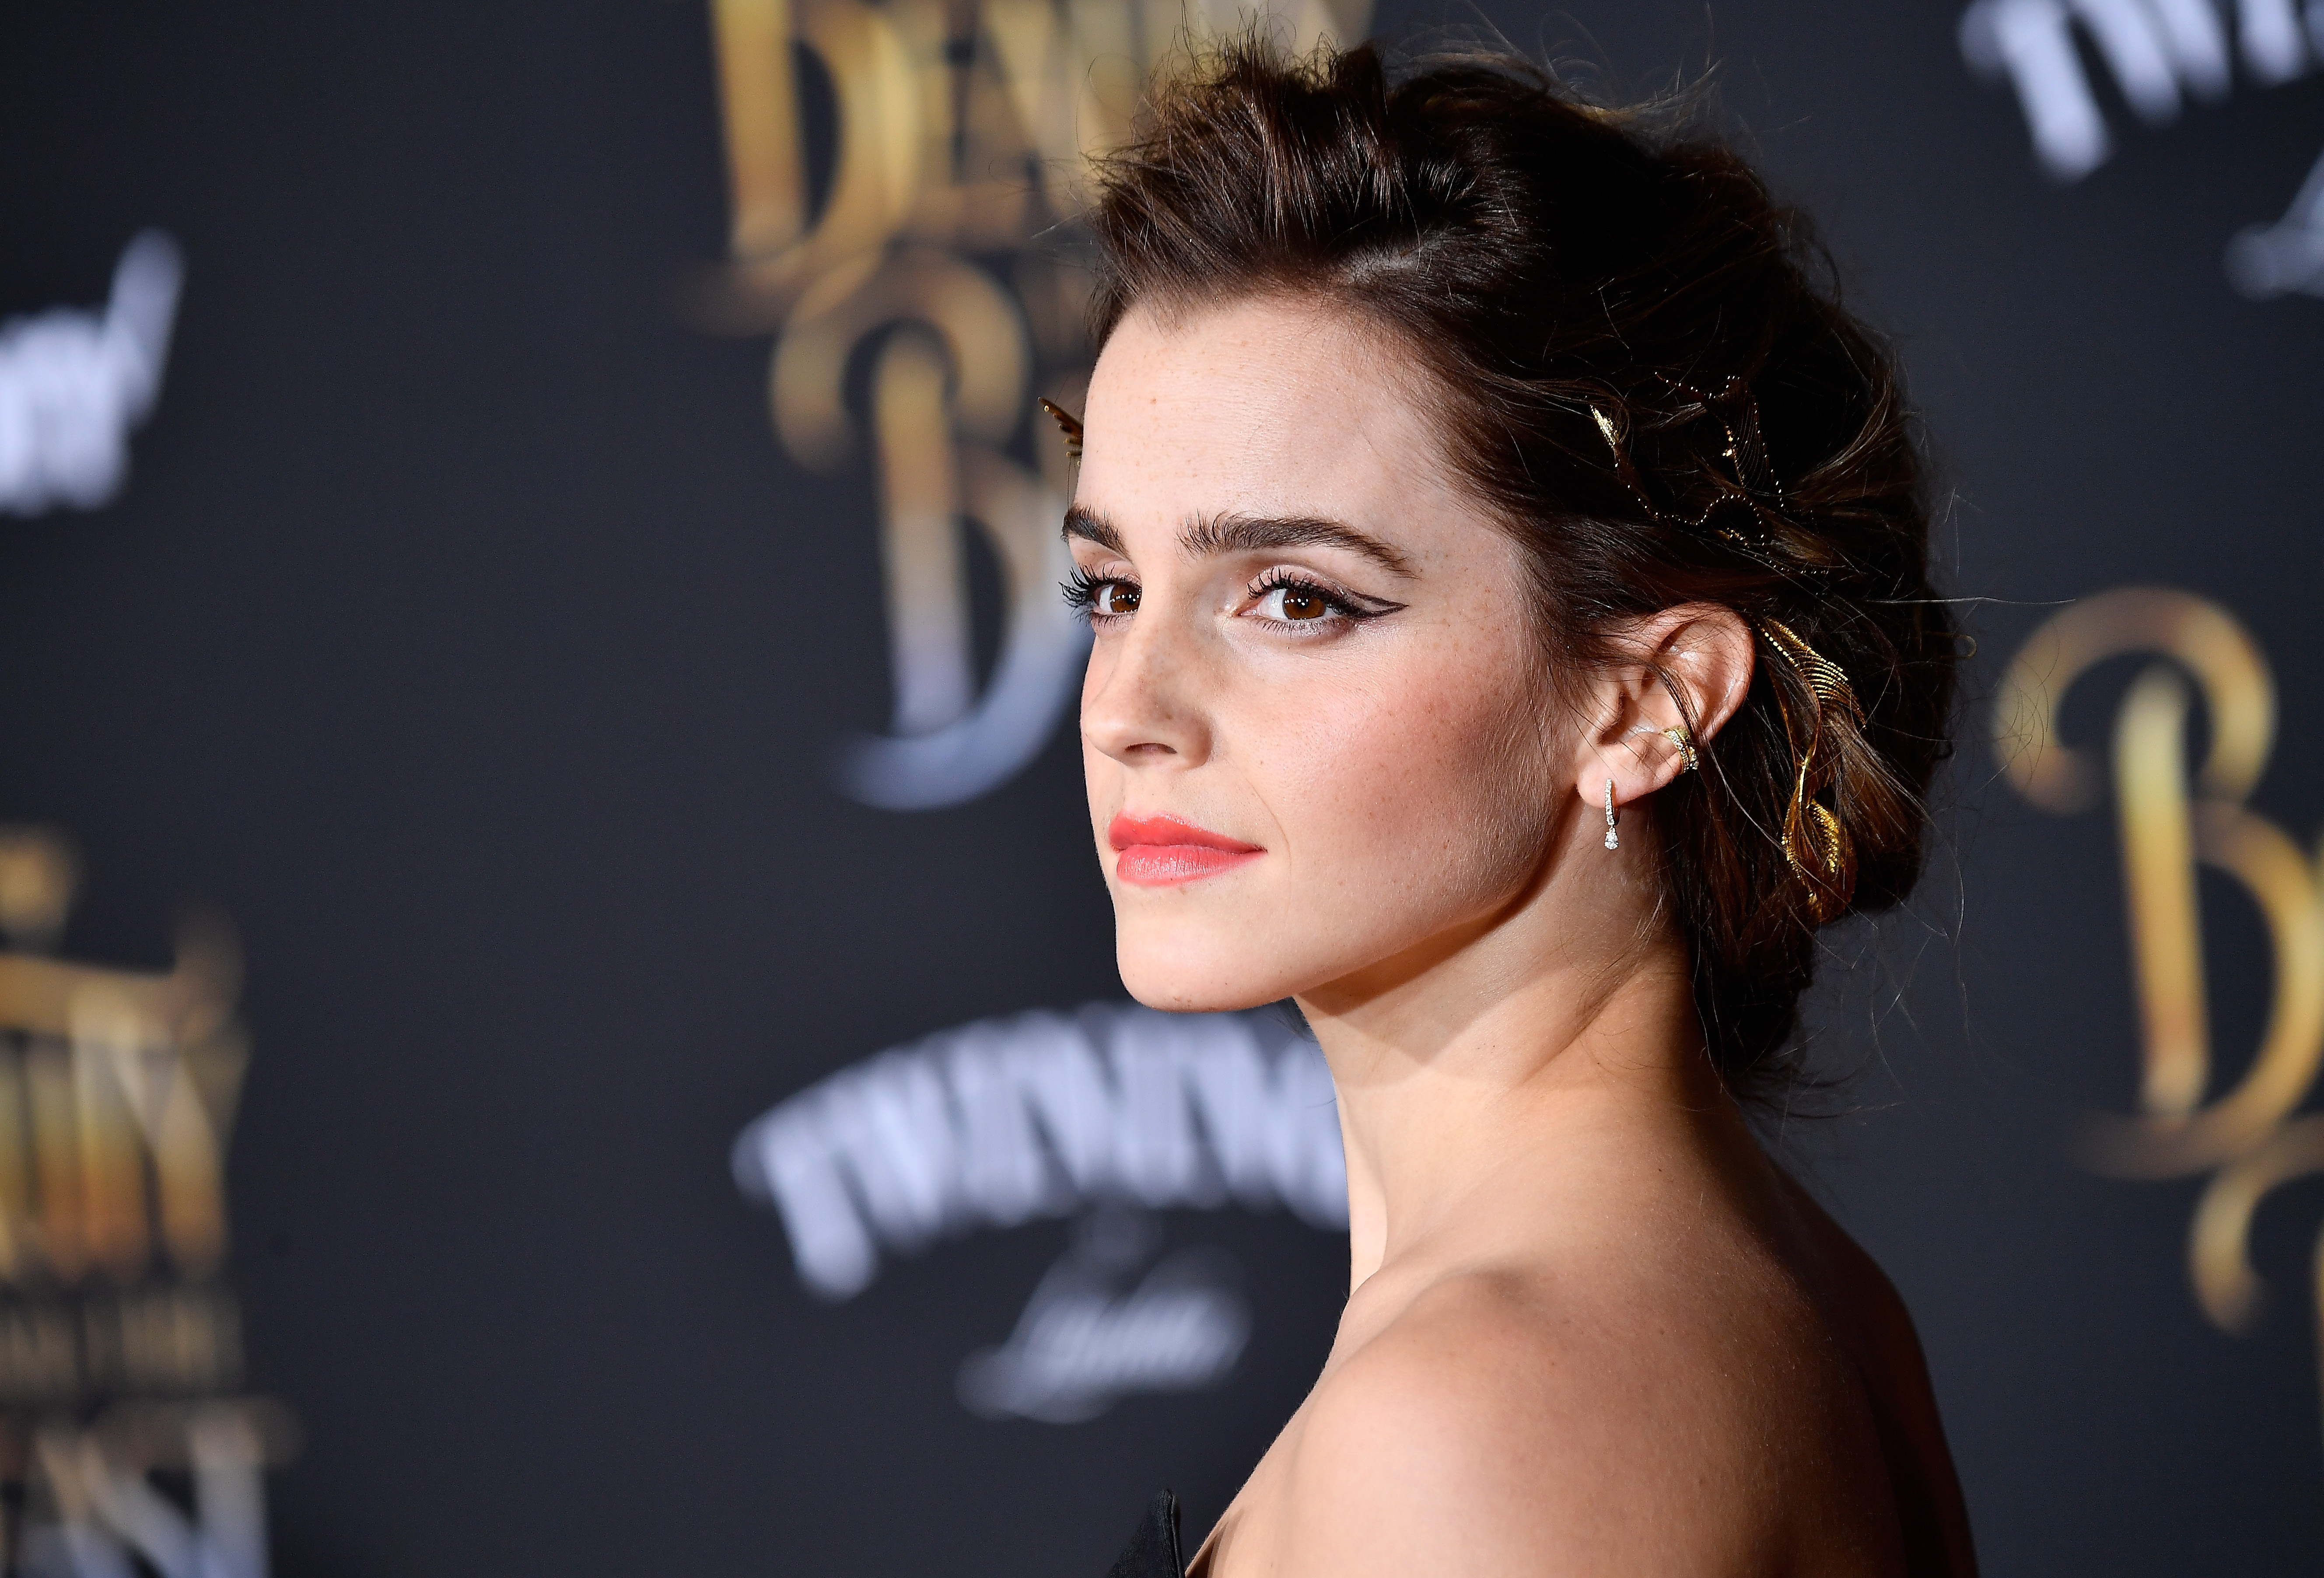 Emma Watson Now Identifies As Self Partnered Rather Than Single